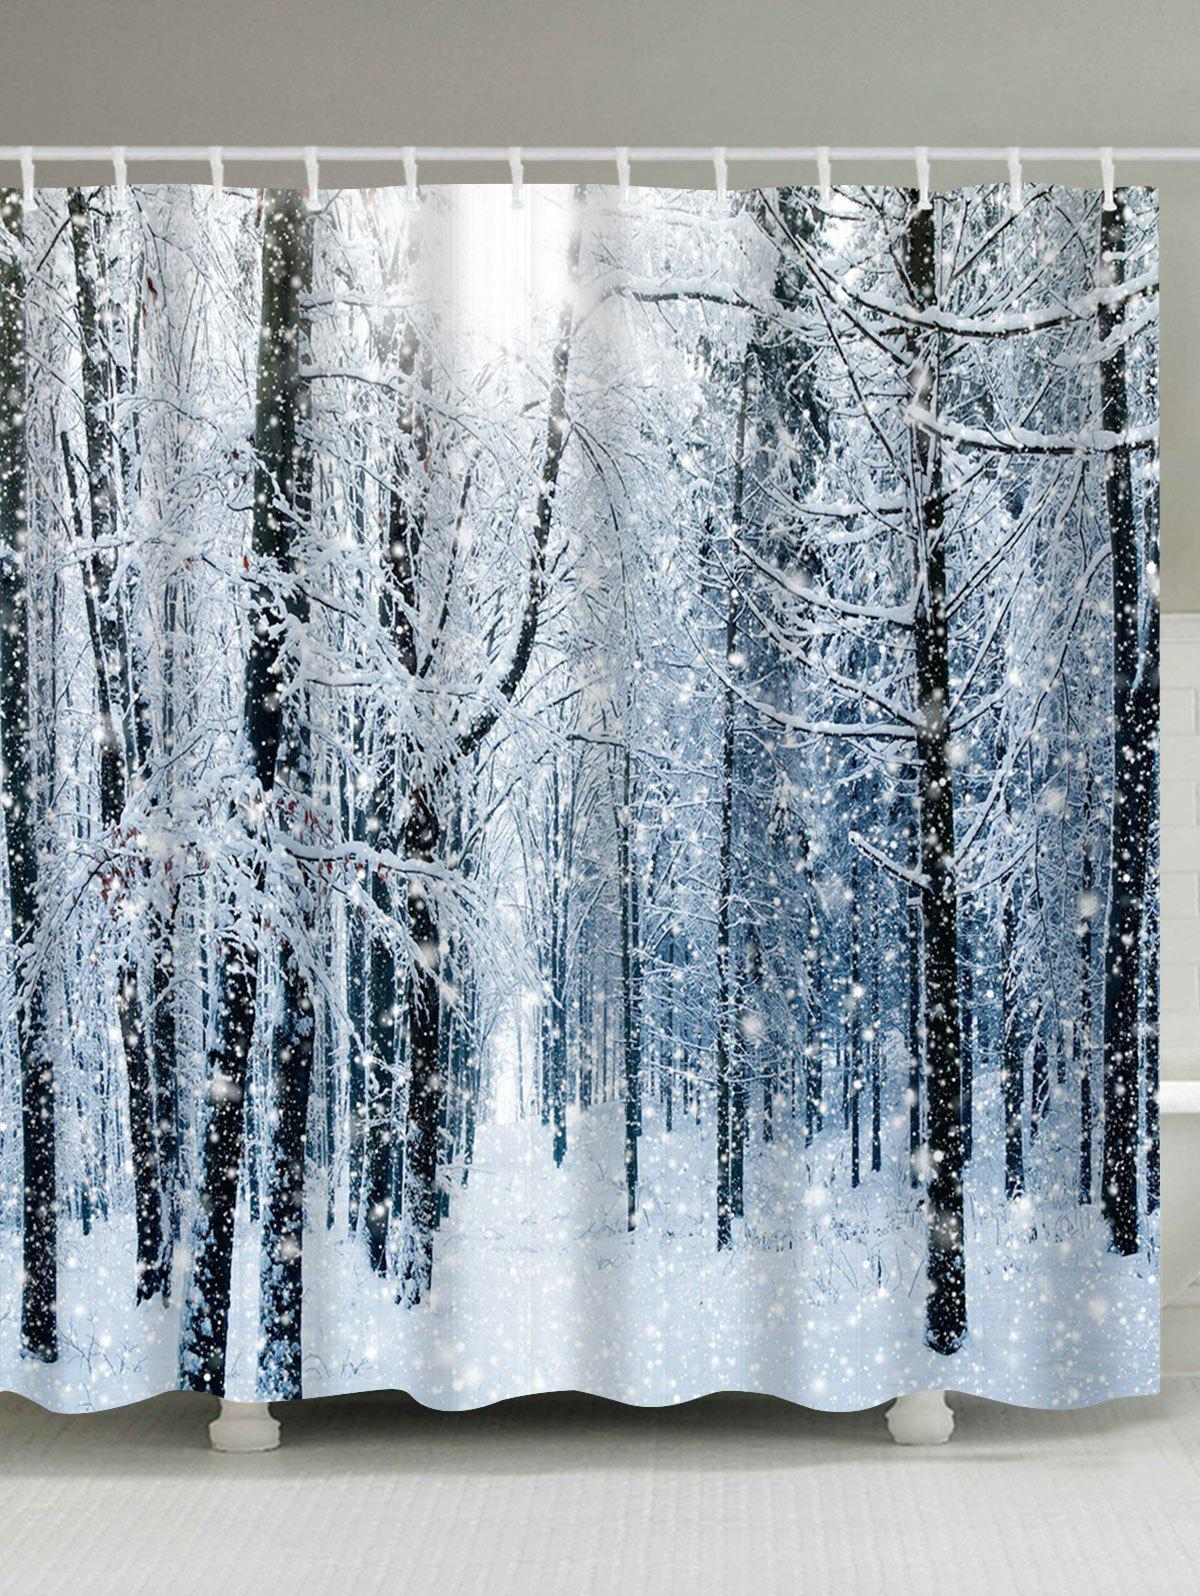 2019 christmas snow forest printed waterproof shower curtain. Black Bedroom Furniture Sets. Home Design Ideas